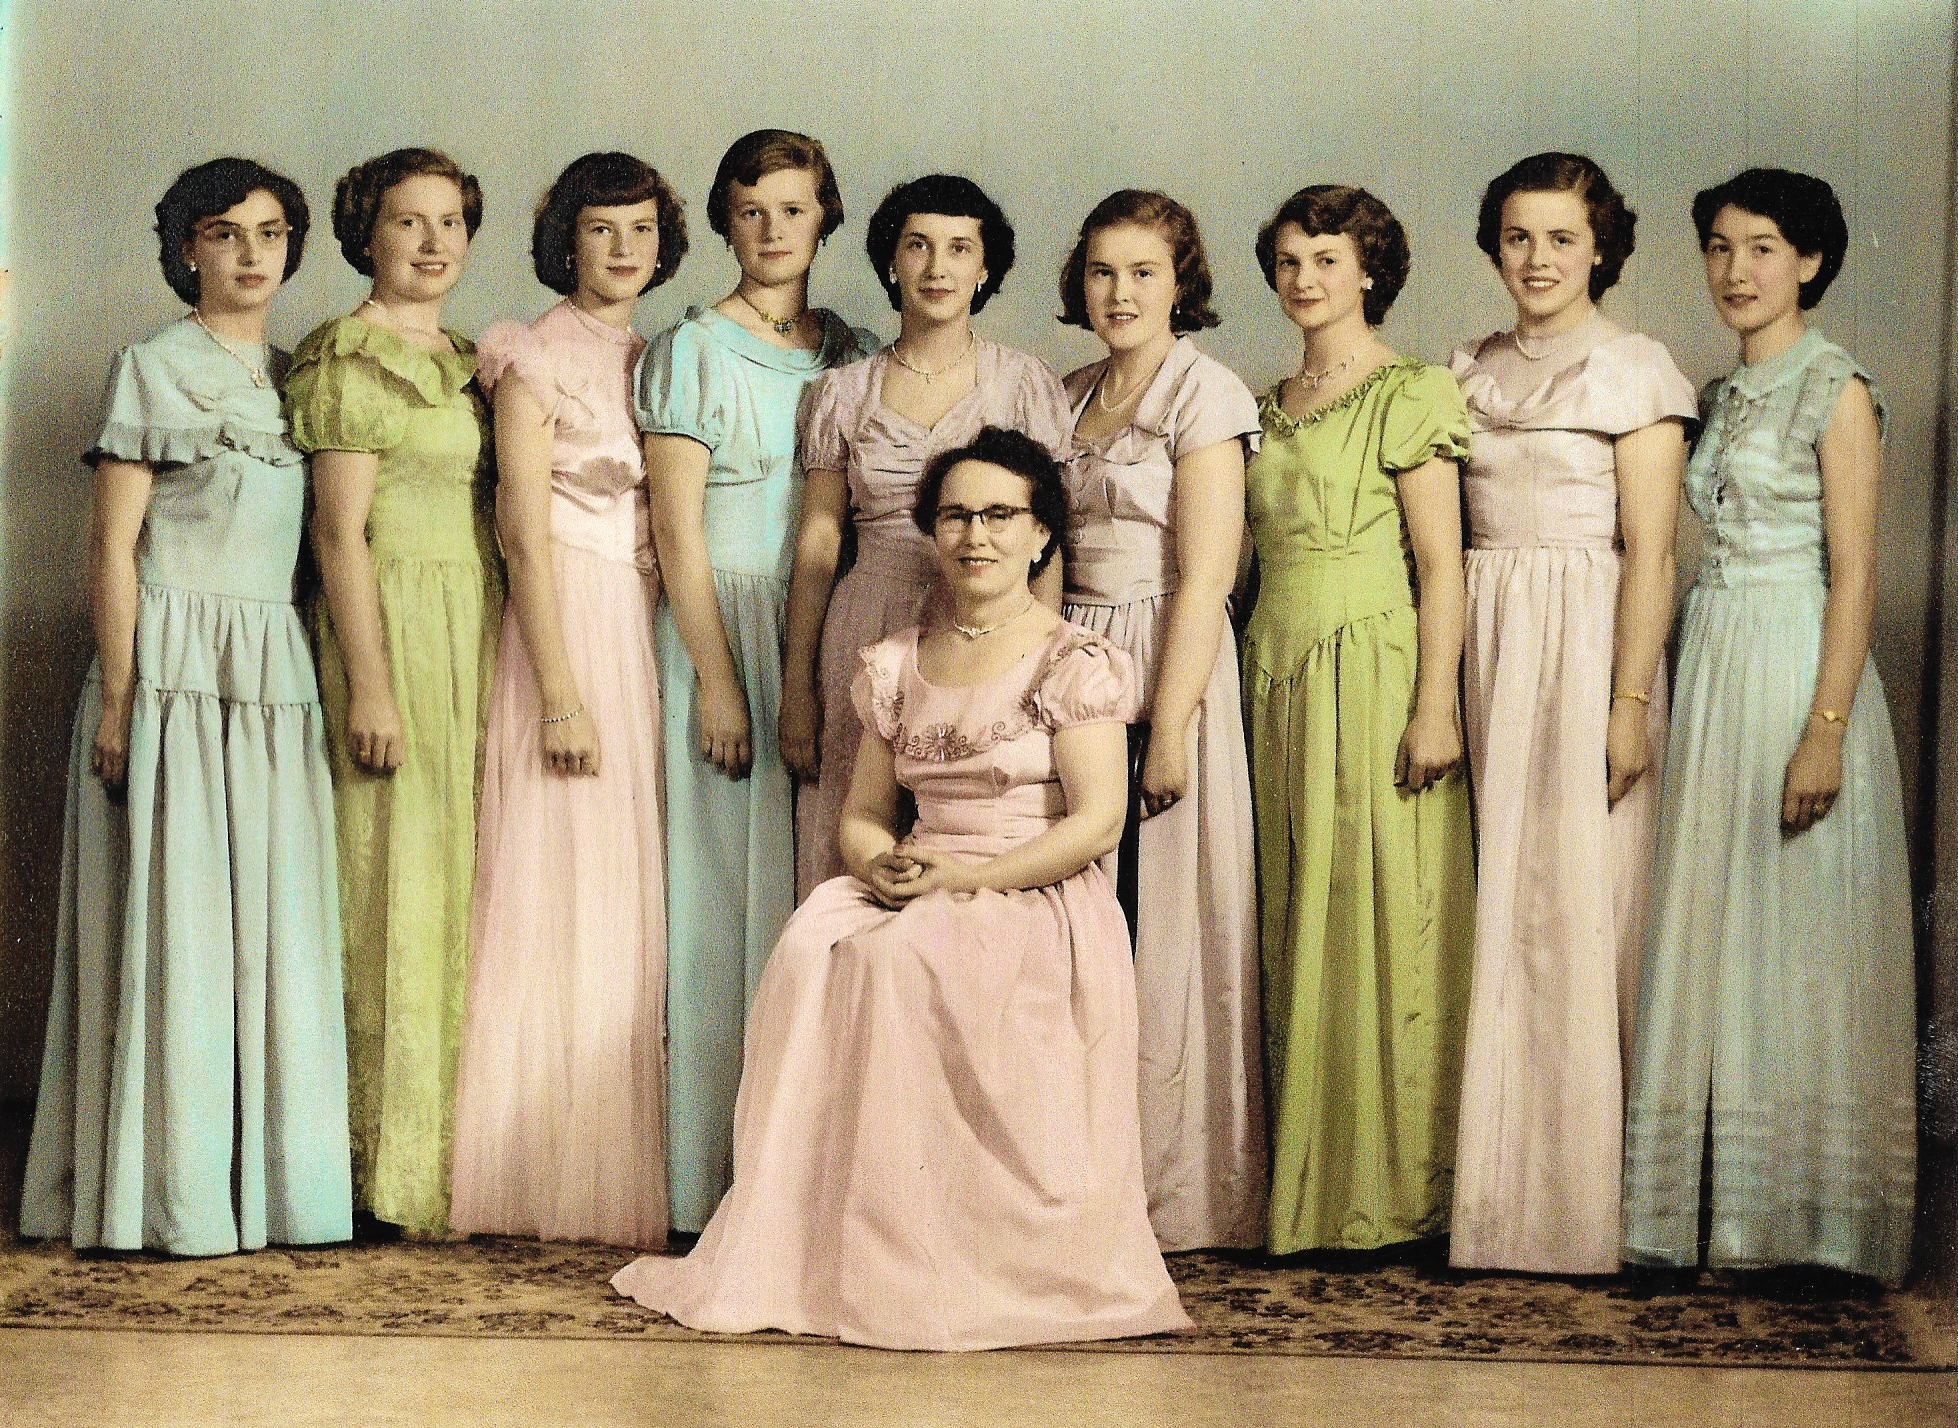 Cupidores 1950 Left to right in the photo:  Donelda Jackson, Betty Wray, Sandra Nickel, Marion Burns, Jean Askin, Audrey VanCamp, Billie McNeelands, Glenna Scott, Marie McCallum. Bessie Jobb (seated).